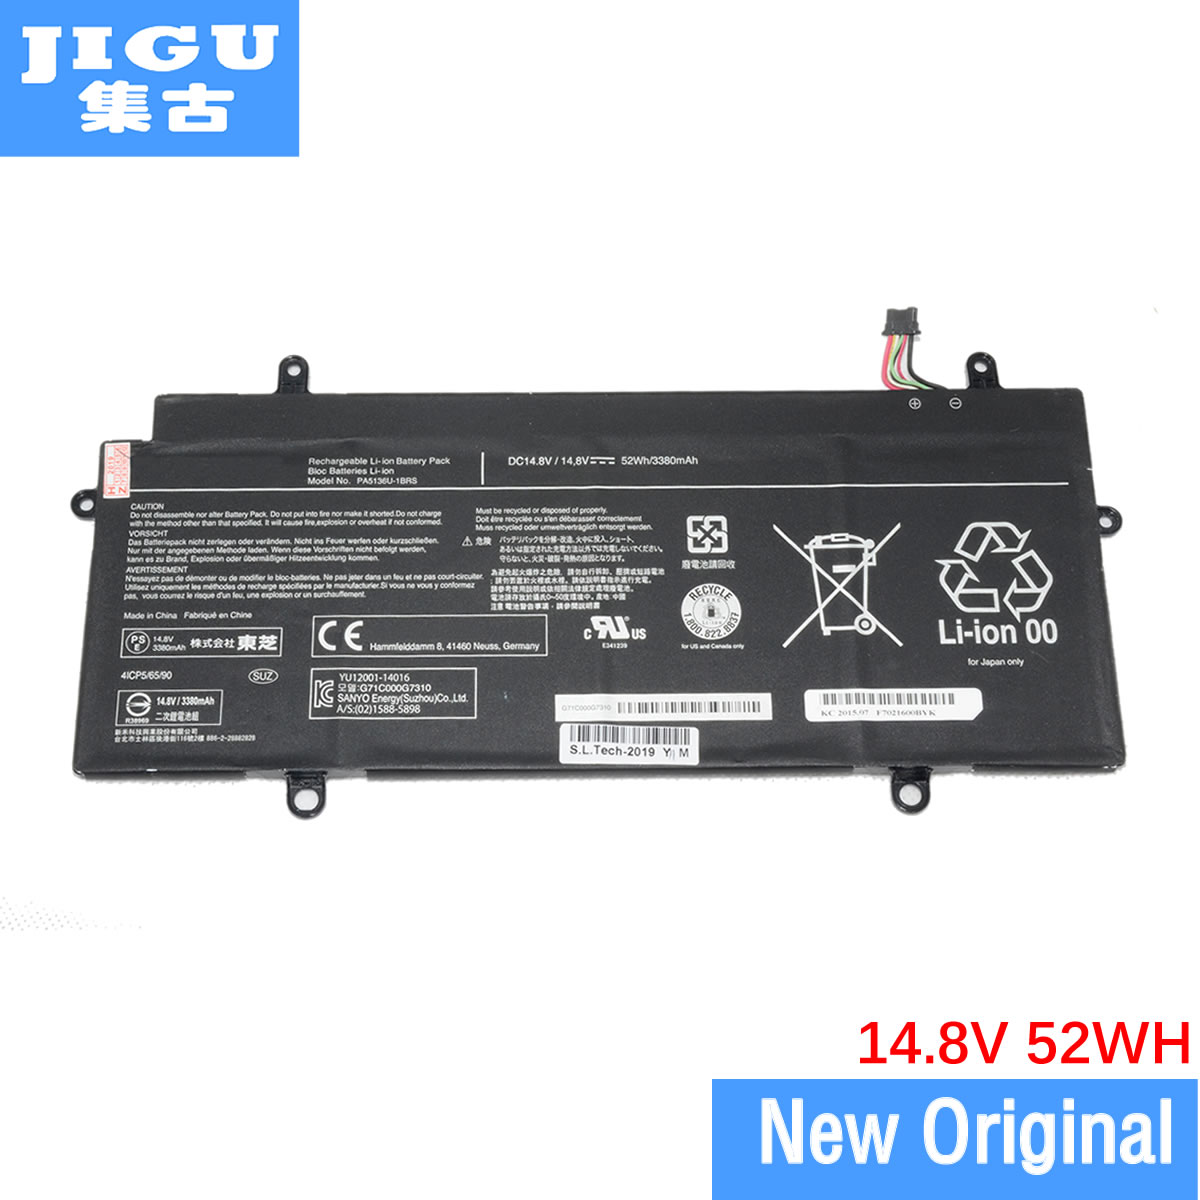 JIGU PA5136U-1BRS Original Laptop Battery For Toshiba For Portege Z30-C Z30 Z30-AK03S Z30-AK04S 15.2V 52WH